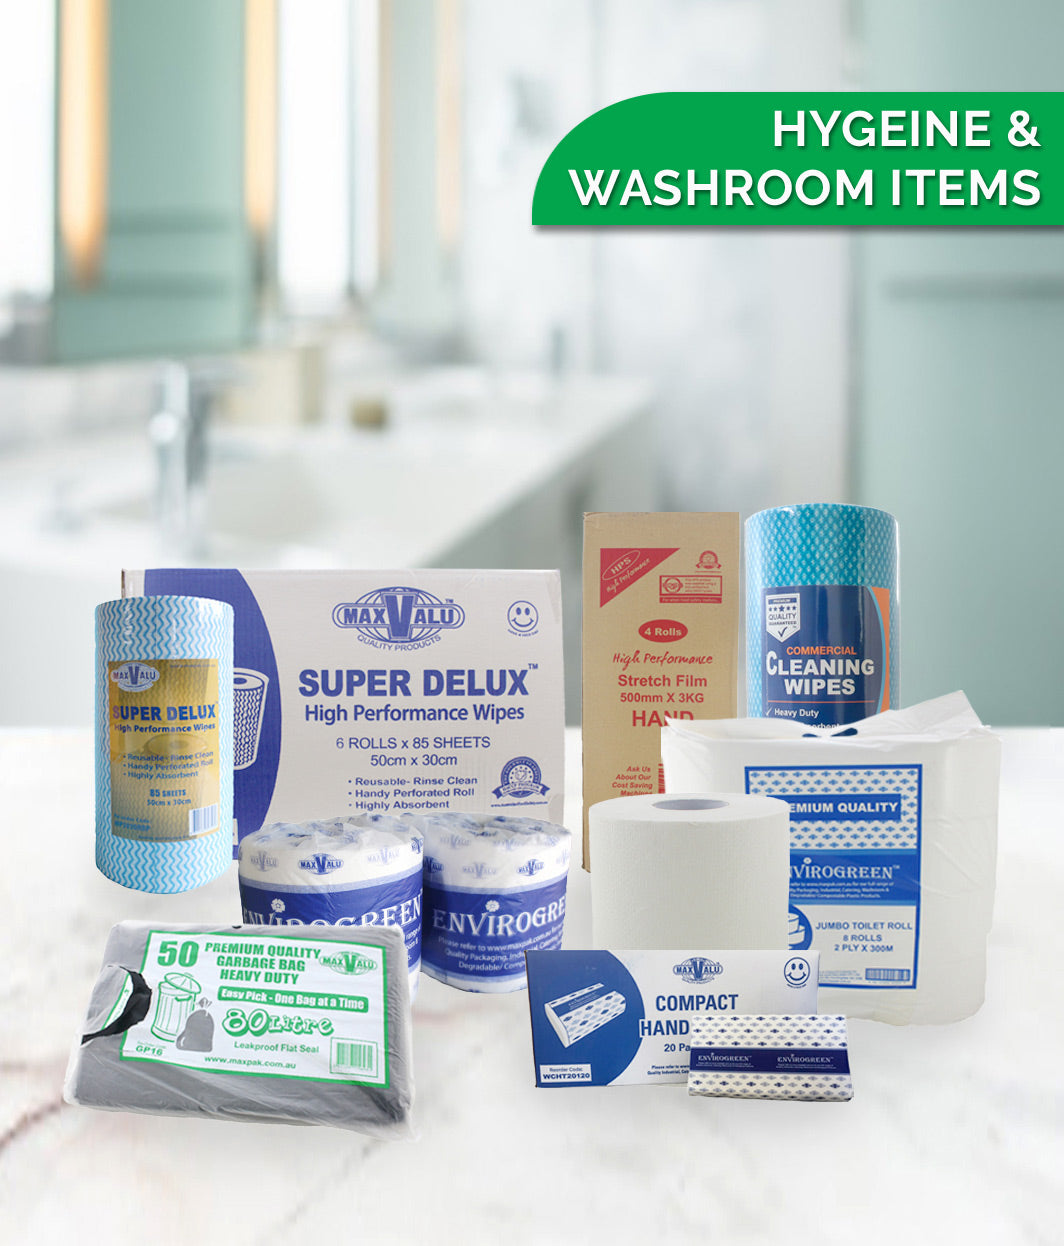 HYGIENE & WASHROOM CONSUMABLES ITEMS